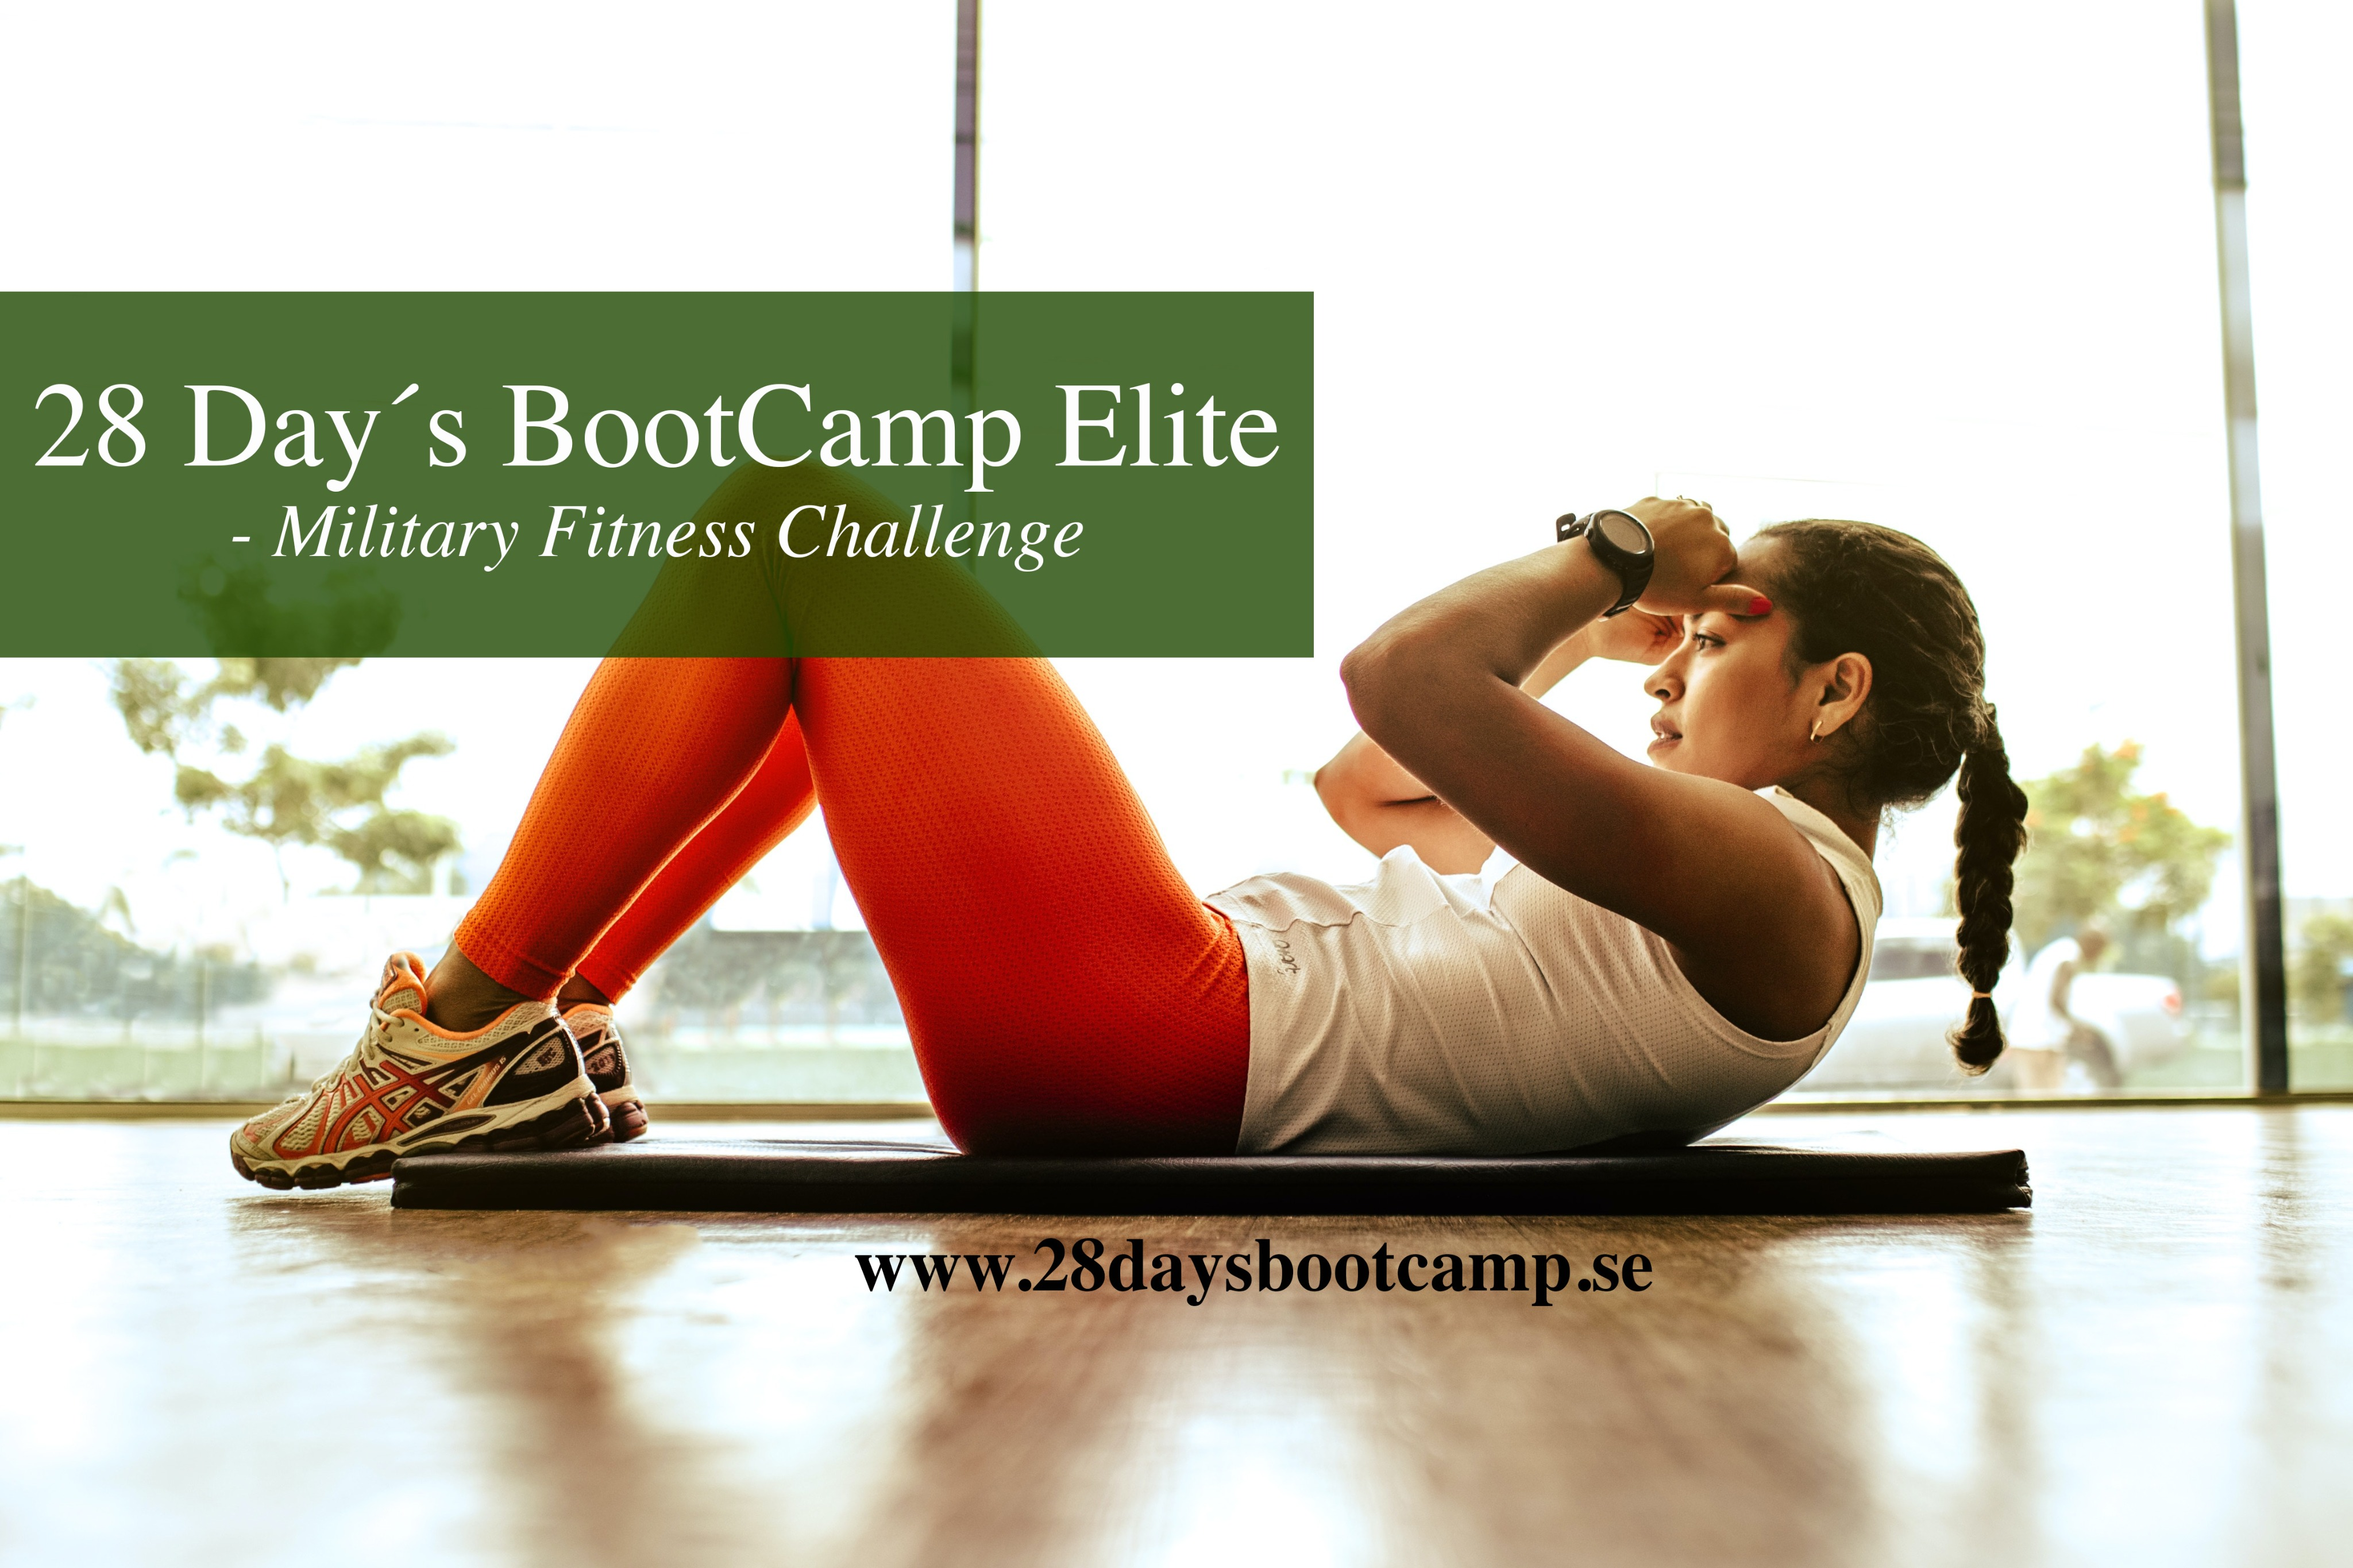 LIMITED EDITION: 28 Day´s BootCamp Elite - Military Fitness Challenge